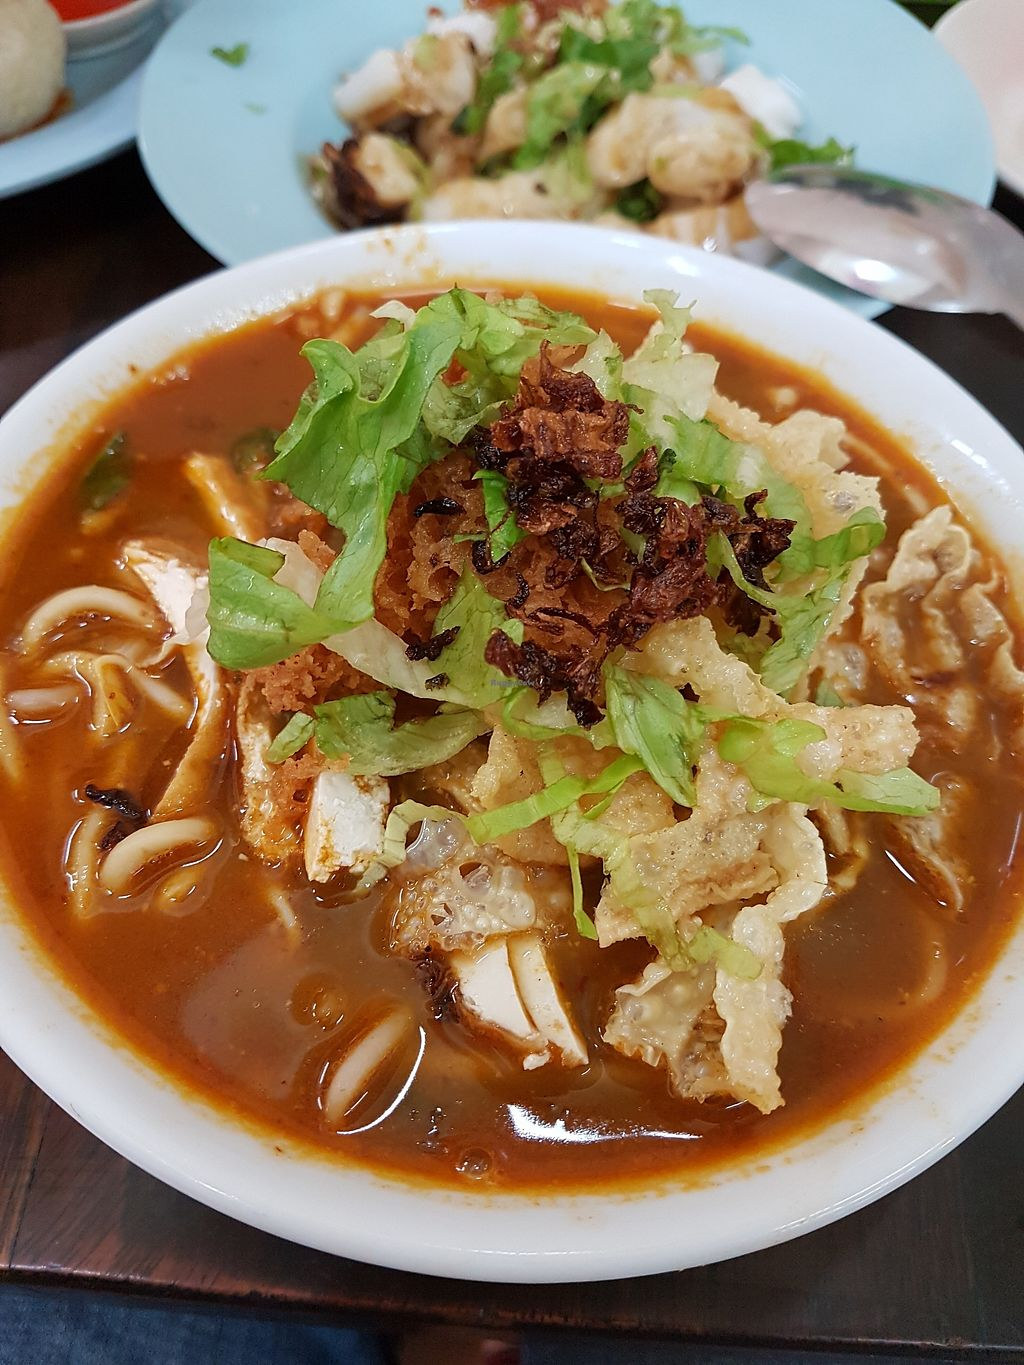 """Photo of Shui Xian Su Shi Yuan  by <a href=""""/members/profile/LaiNamKhim"""">LaiNamKhim</a> <br/>""""Prawn noodles"""". Quite different from the Singapore style. But I liked it. The broth is a little spicy <br/> March 31, 2018  - <a href='/contact/abuse/image/32914/378558'>Report</a>"""